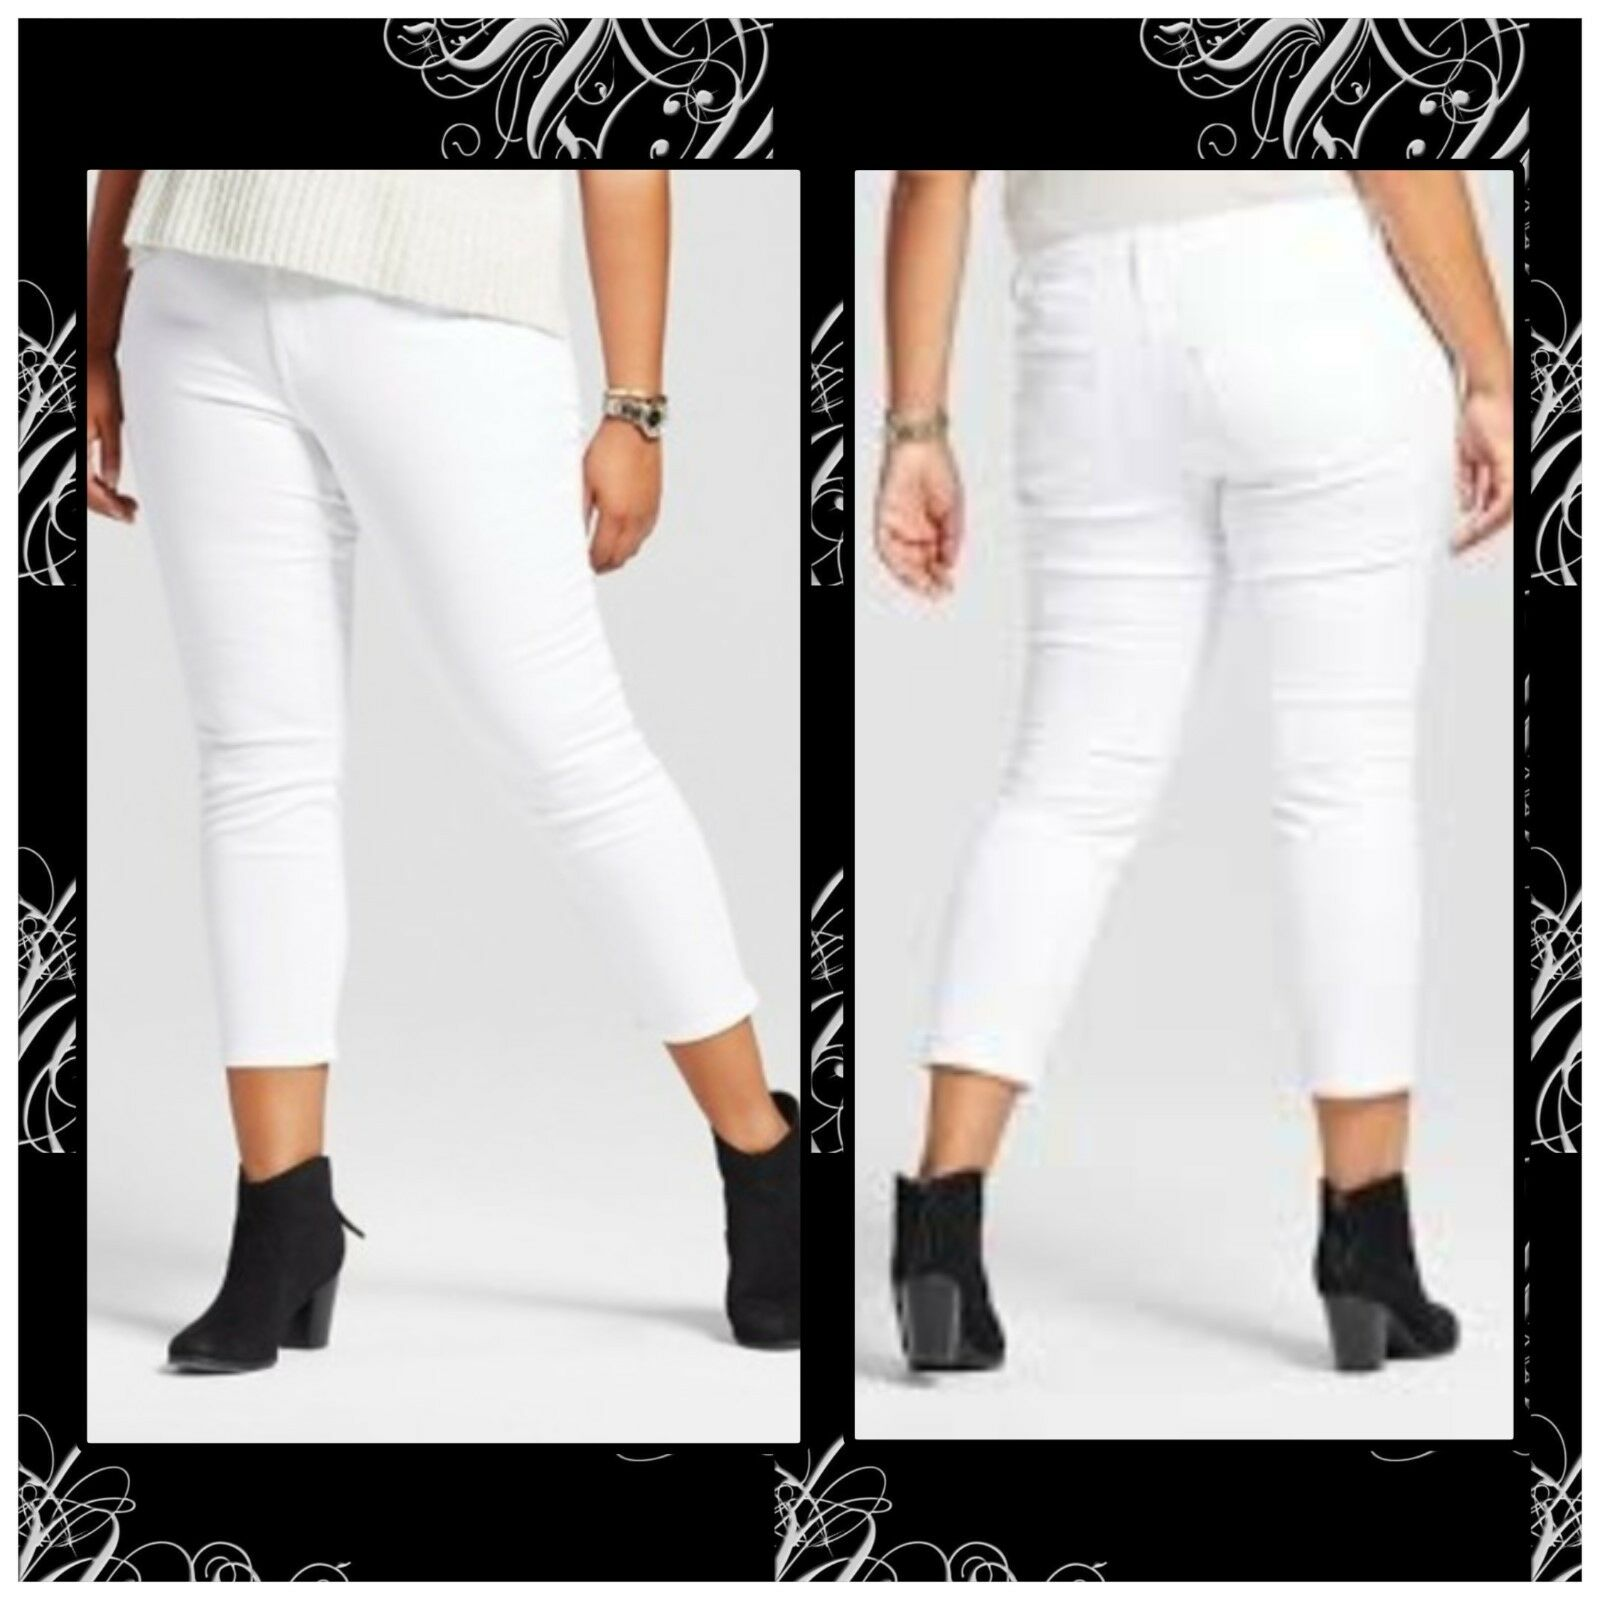 88a965bcf996e7 NEW * AVA & VIV CROPPED JEGGING Capri POWER STRETCH Plus Size 16W, 24W, 26W  1 of 7Only 4 available ...